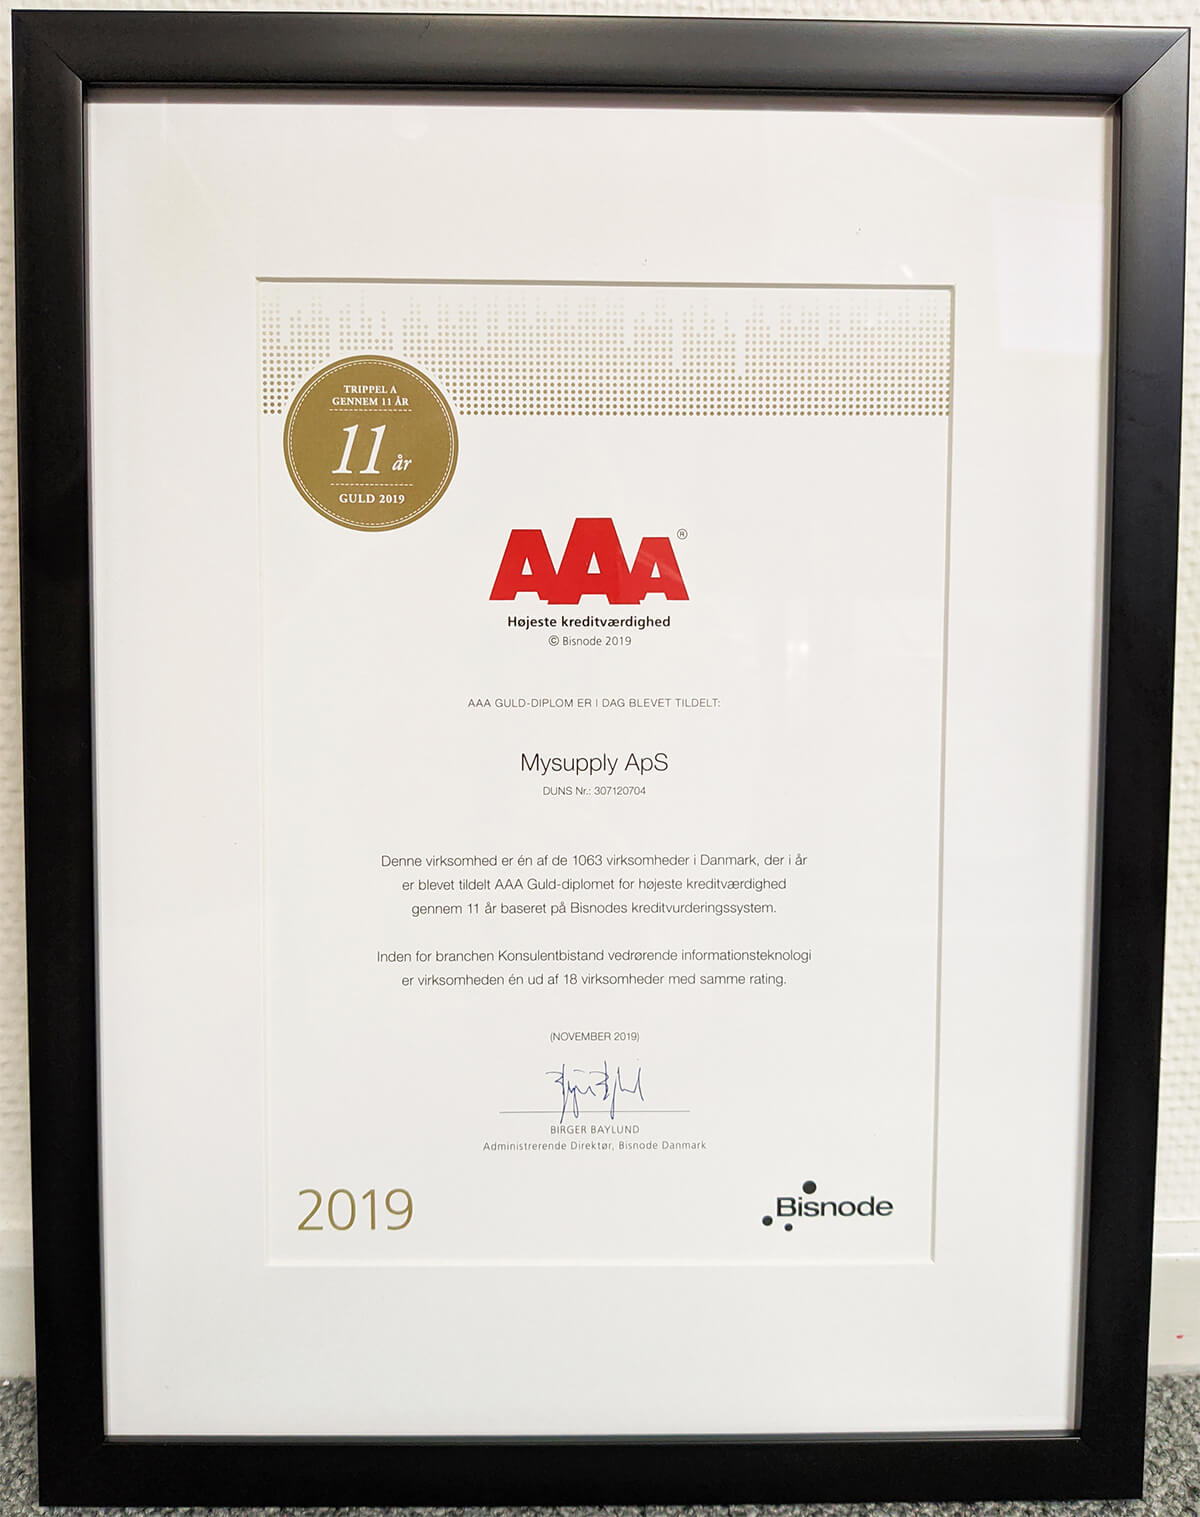 mySupply has been awarded another AAA gold diploma